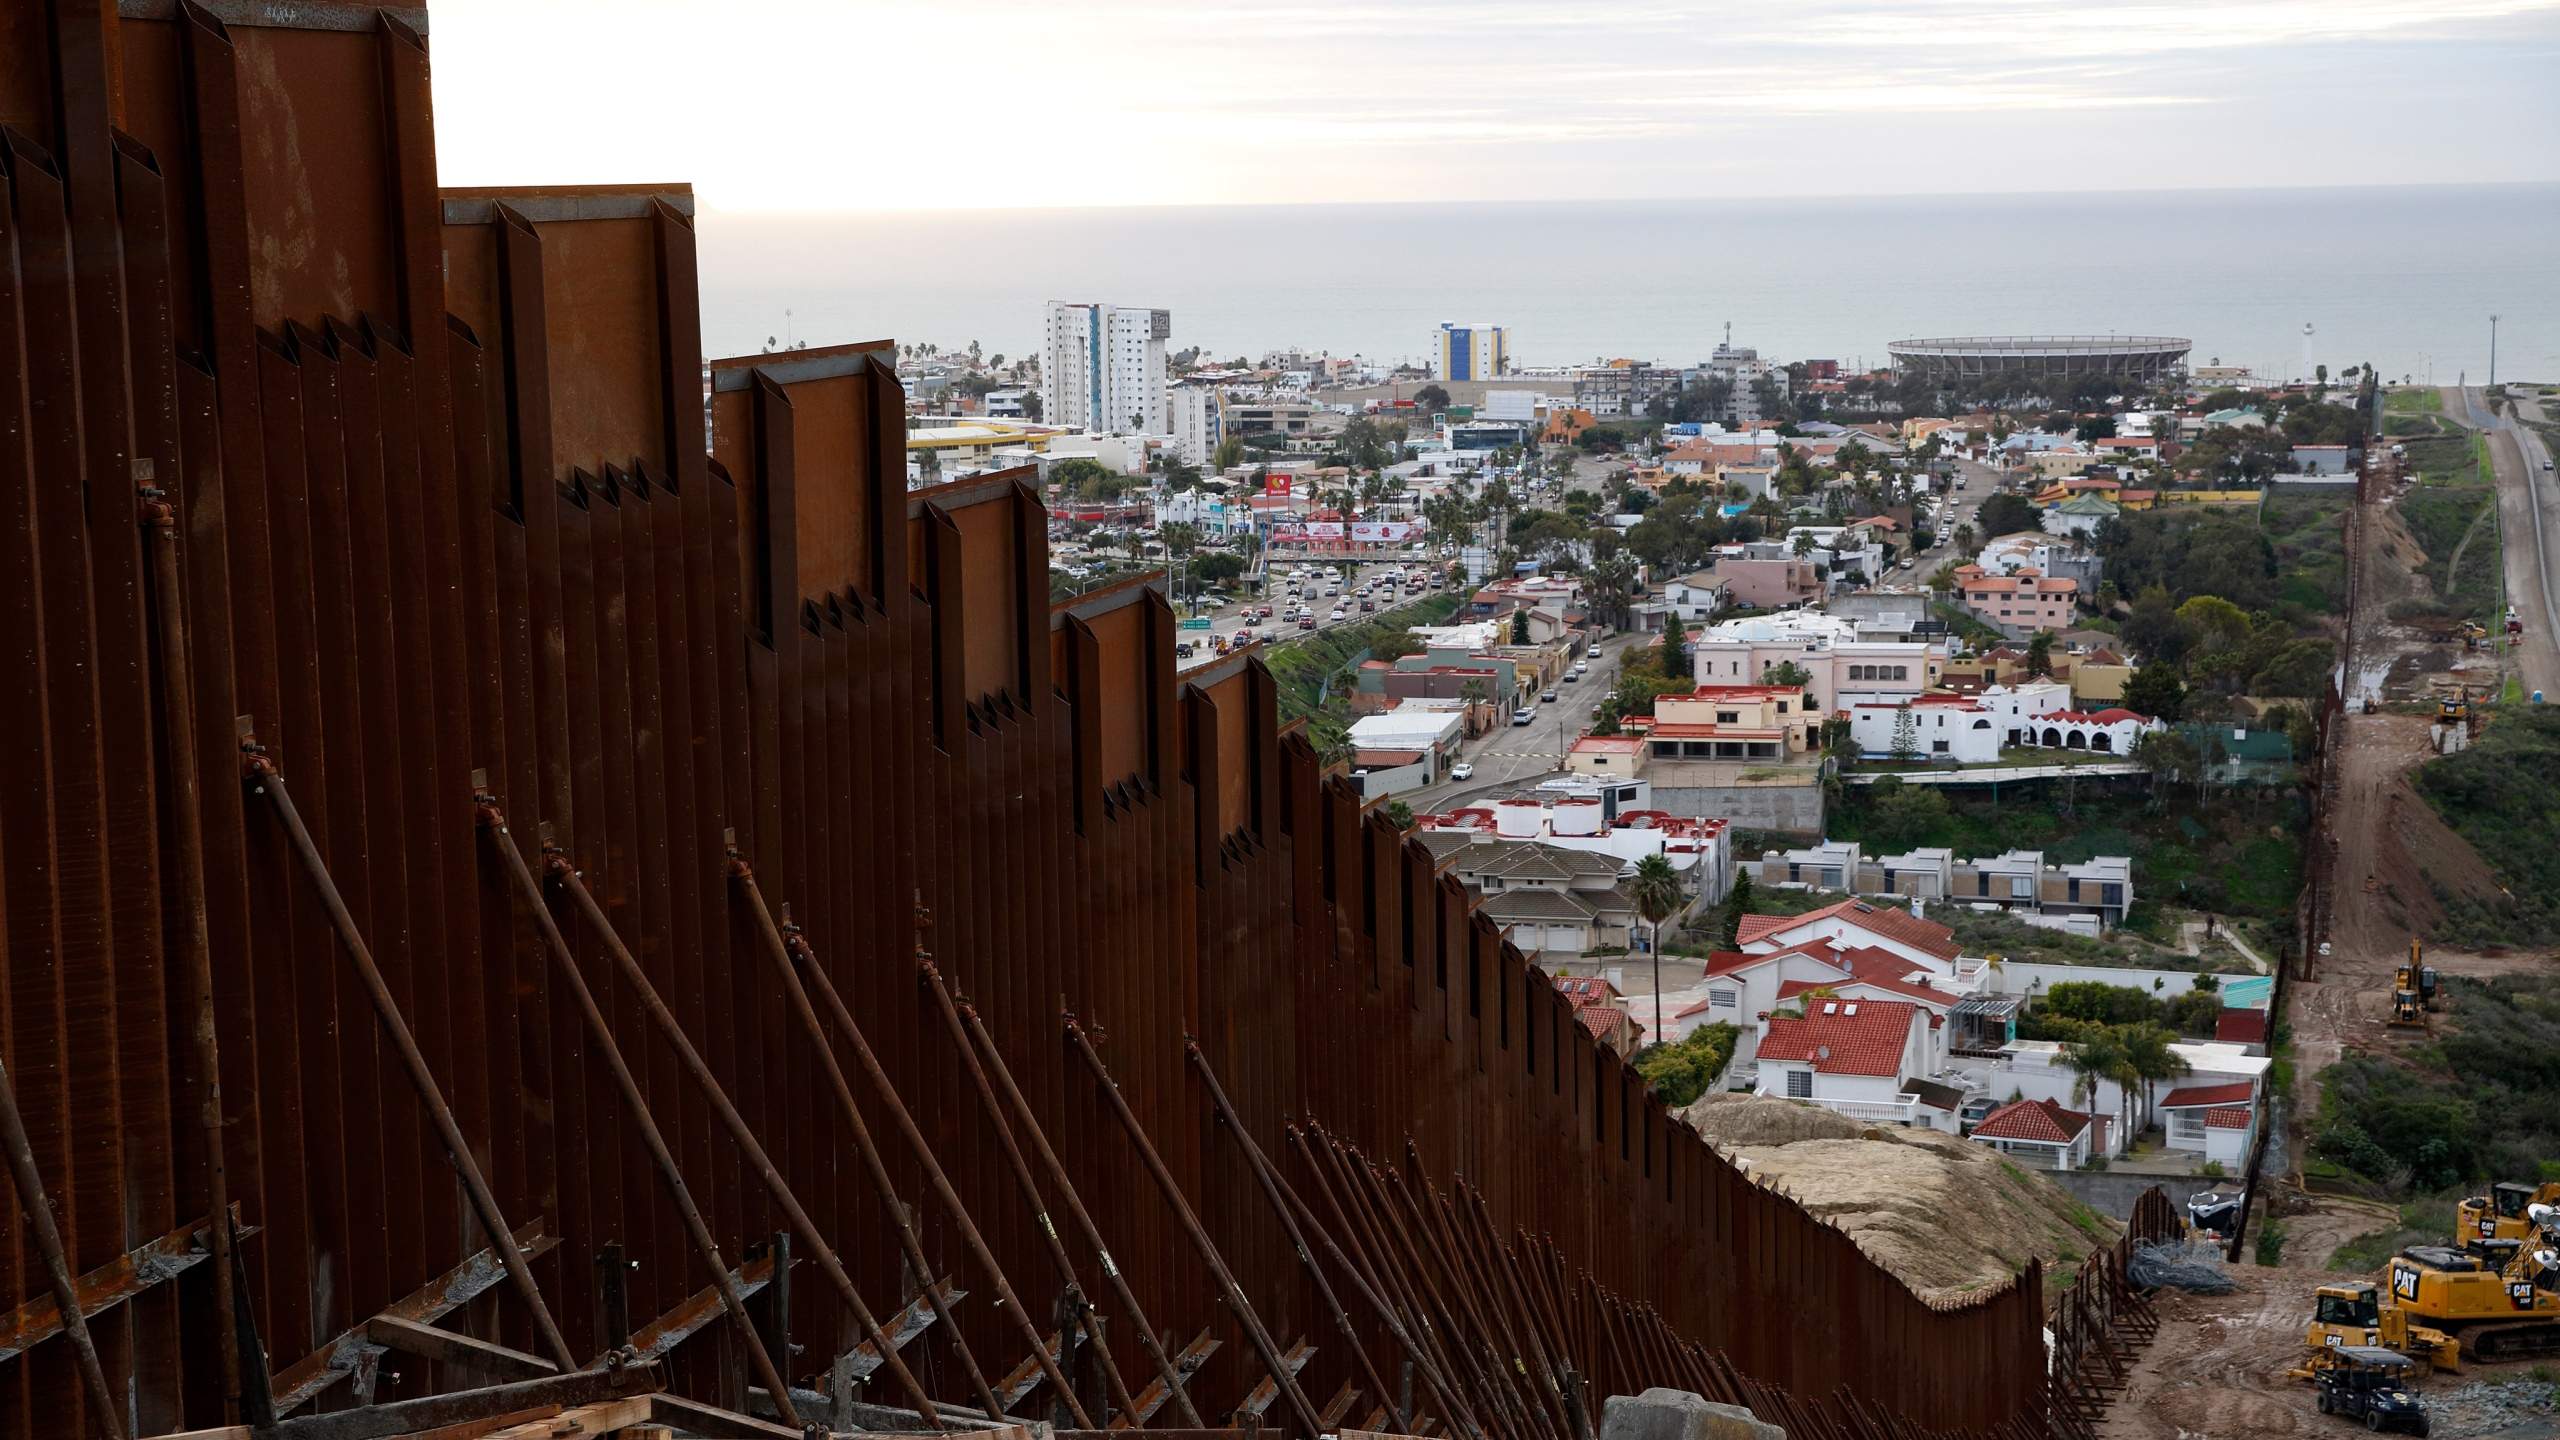 Border_Wall_View_from_Mexico_35440-159532.jpg47287910